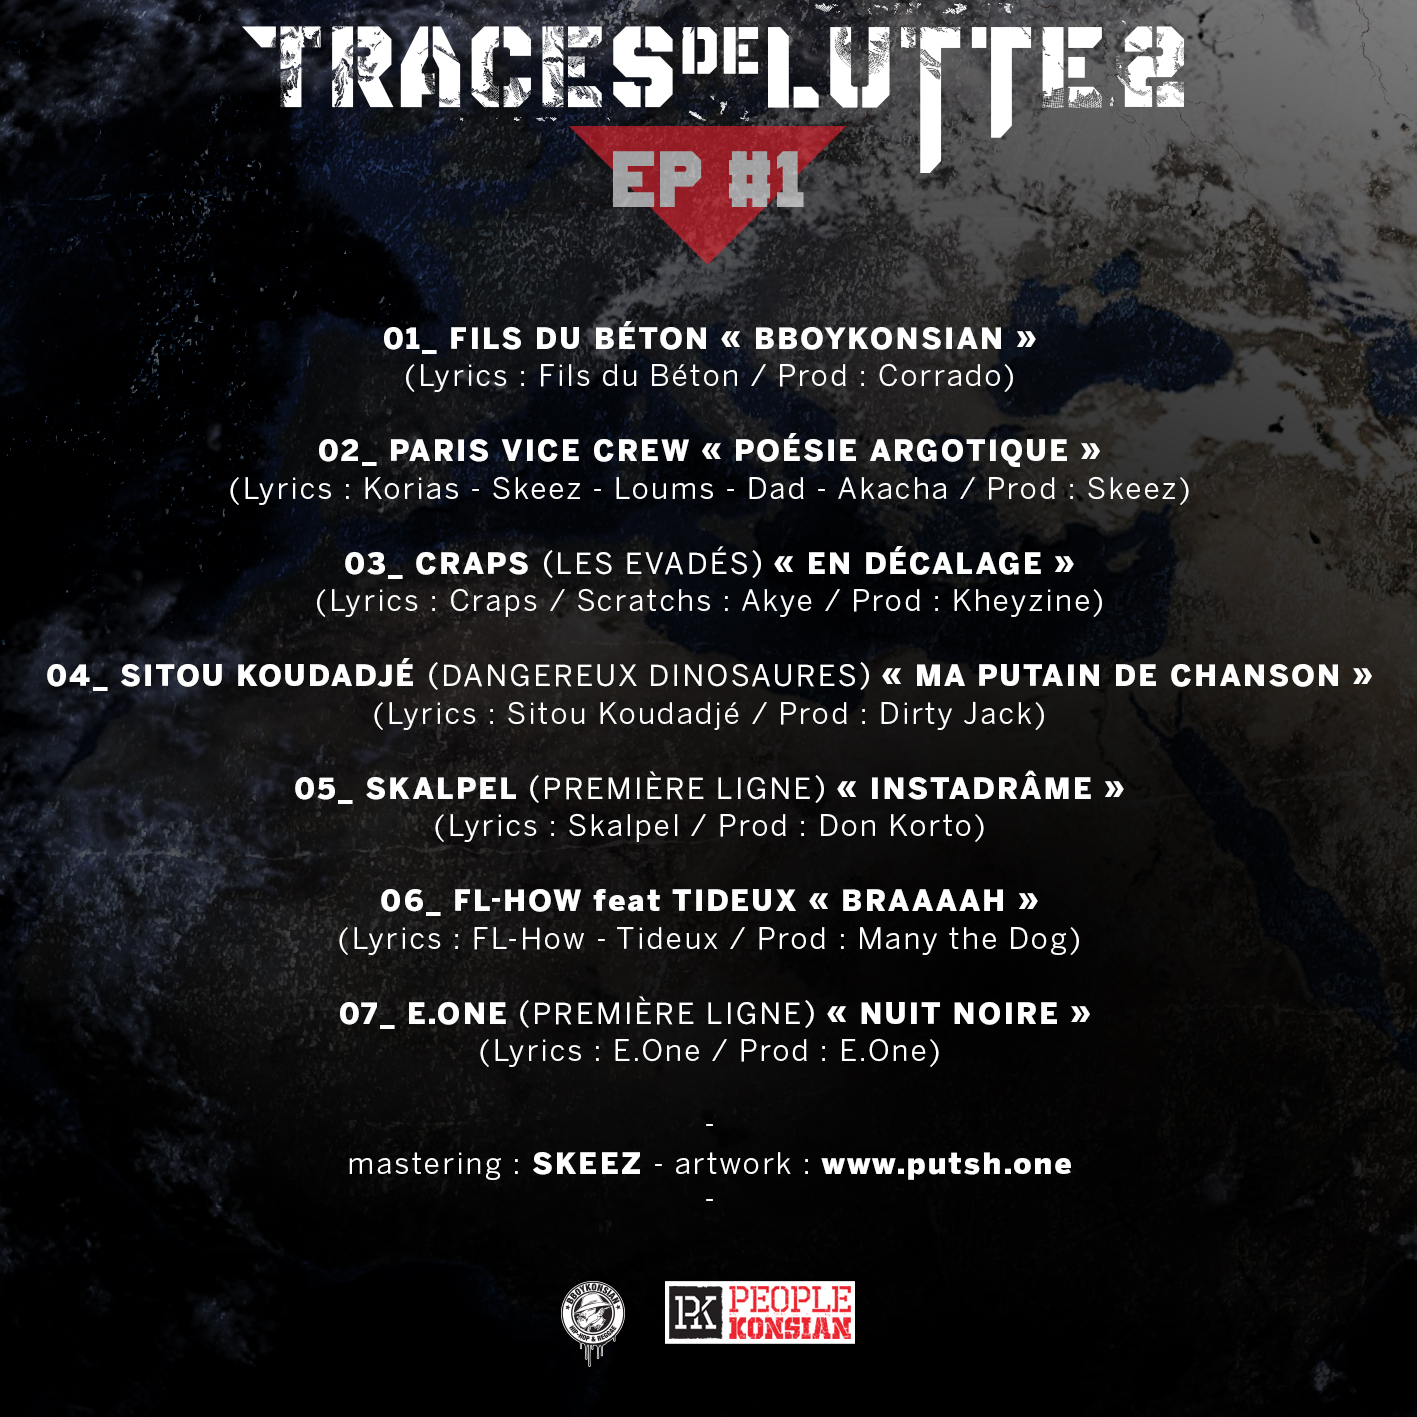 """Traces de lutte 2 - EP #1"" disponible en Digital le mardi 10 septembre 2019"